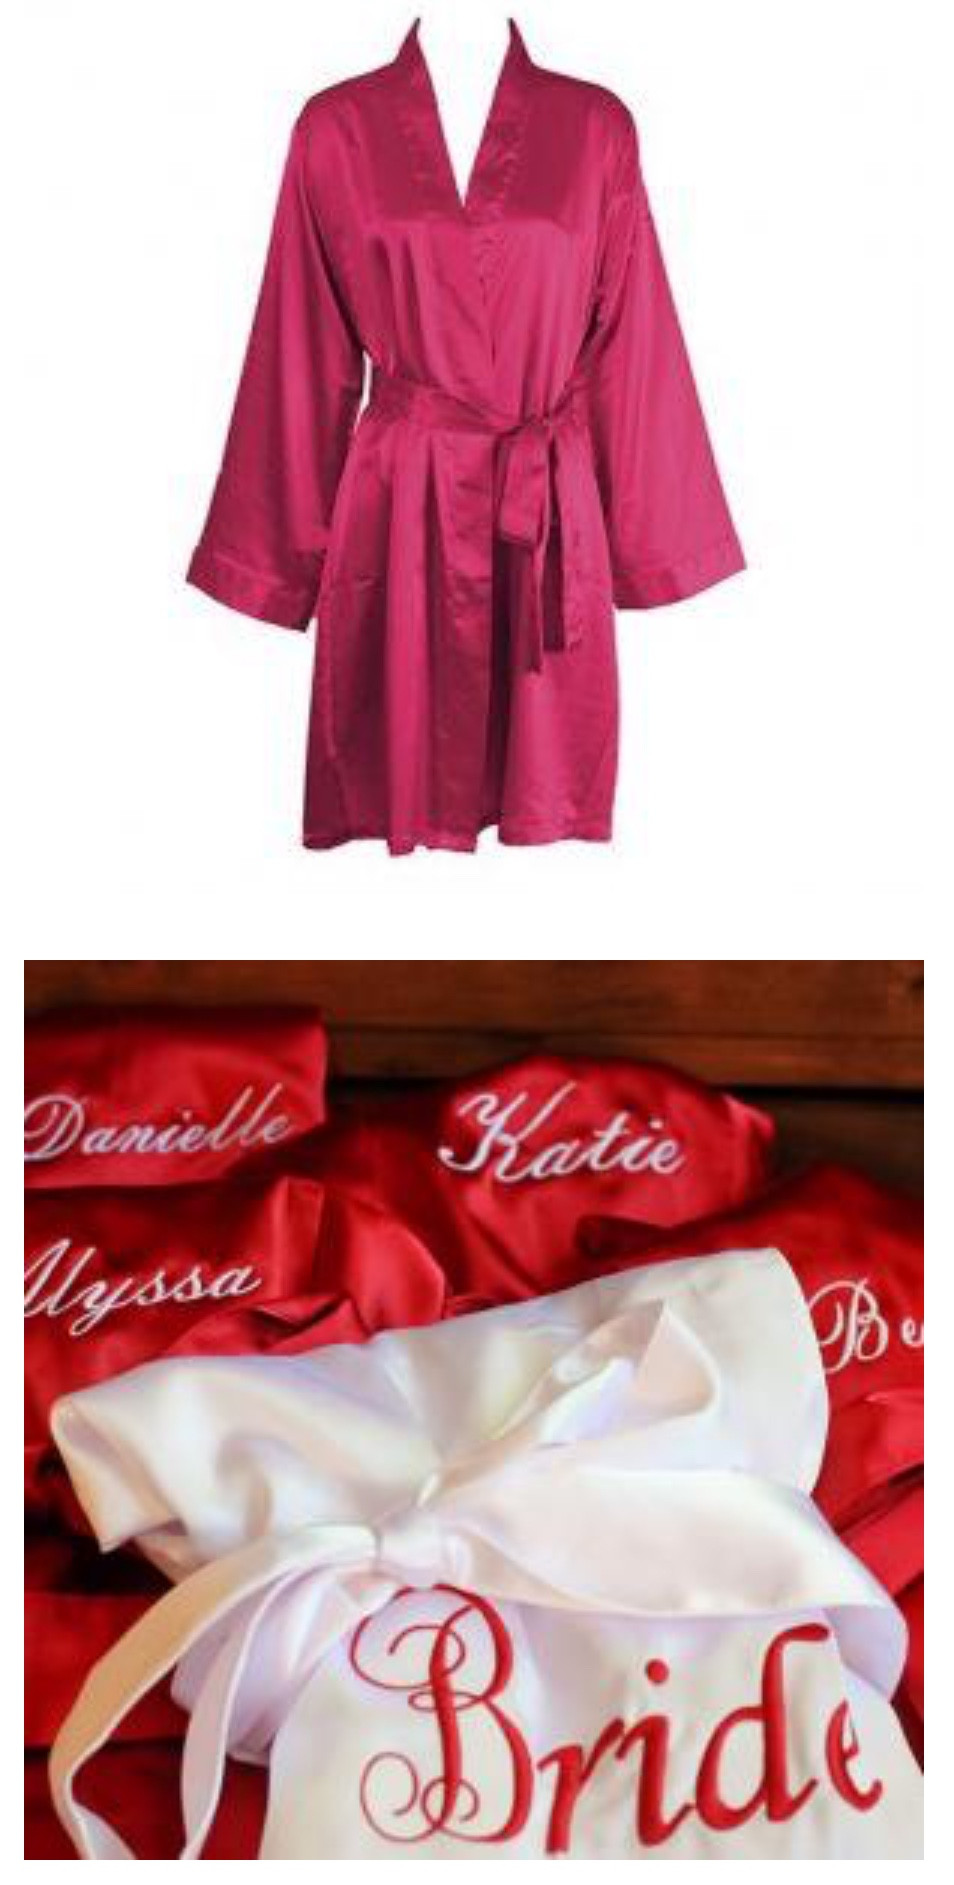 Personalized Bridesmaids Gifts - Robe